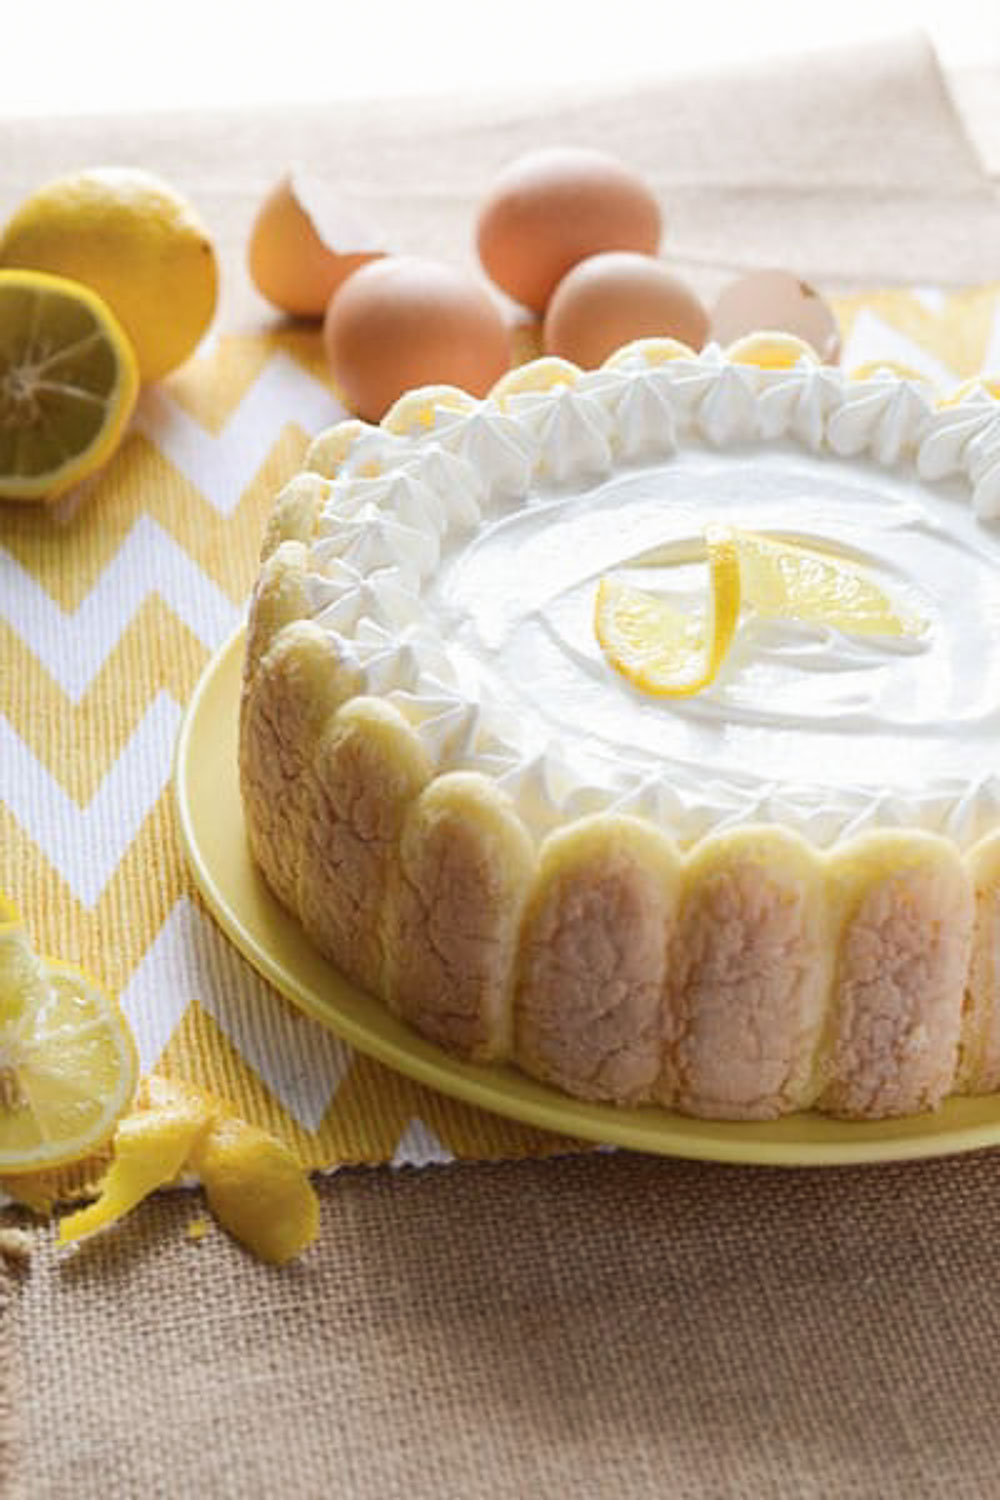 A whole cake on a yellow plate with a slice of lemon on top and also on the sides with whole eggs and cut lemons.